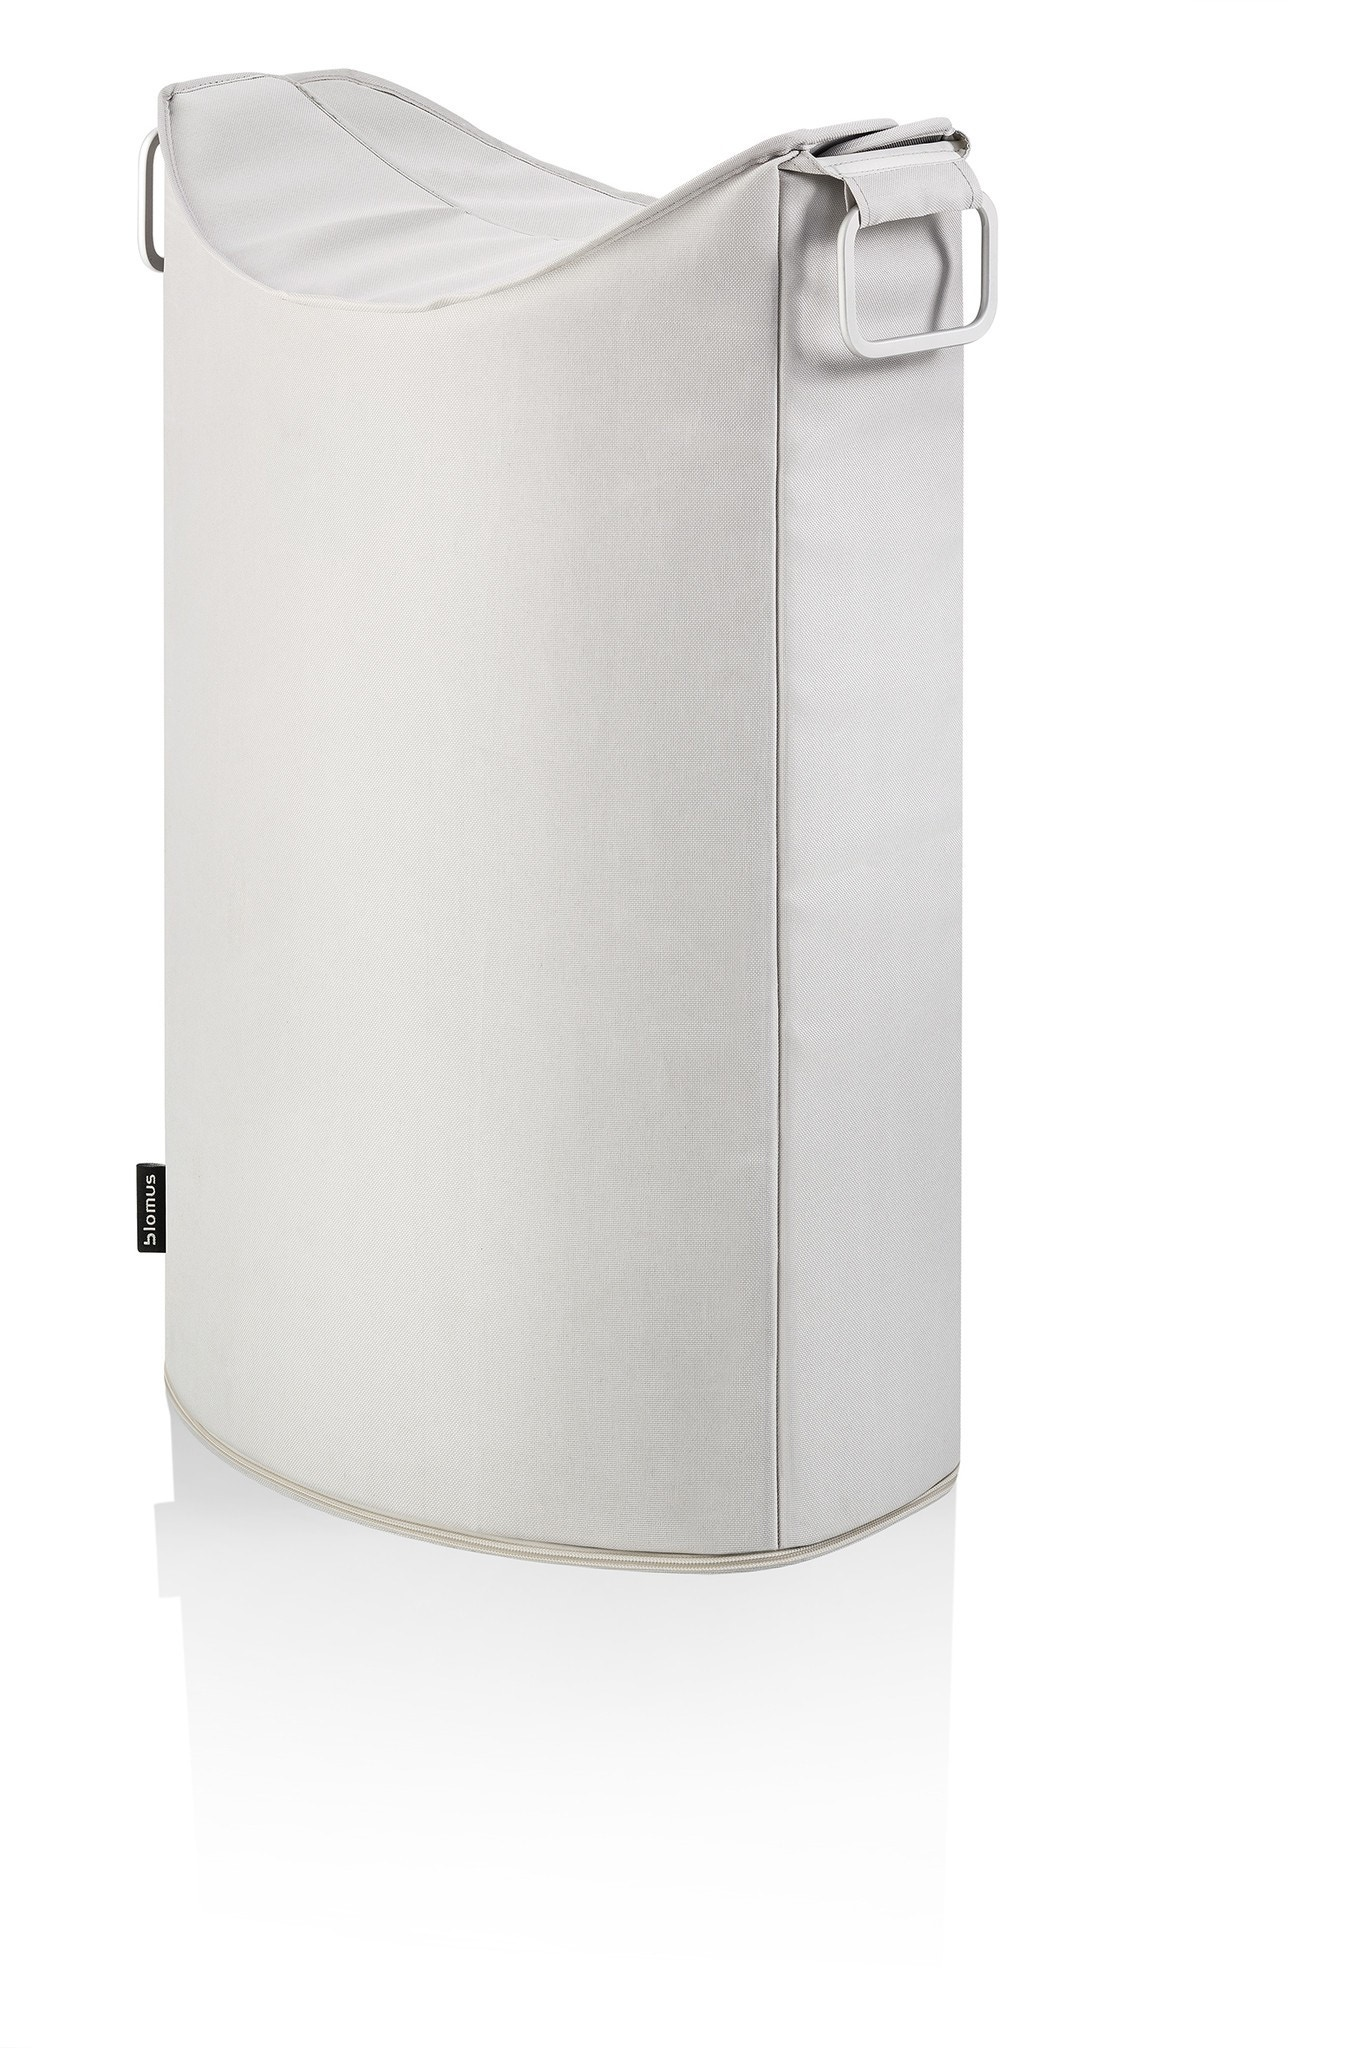 Blomus Frisco Foldable Laundry Bin